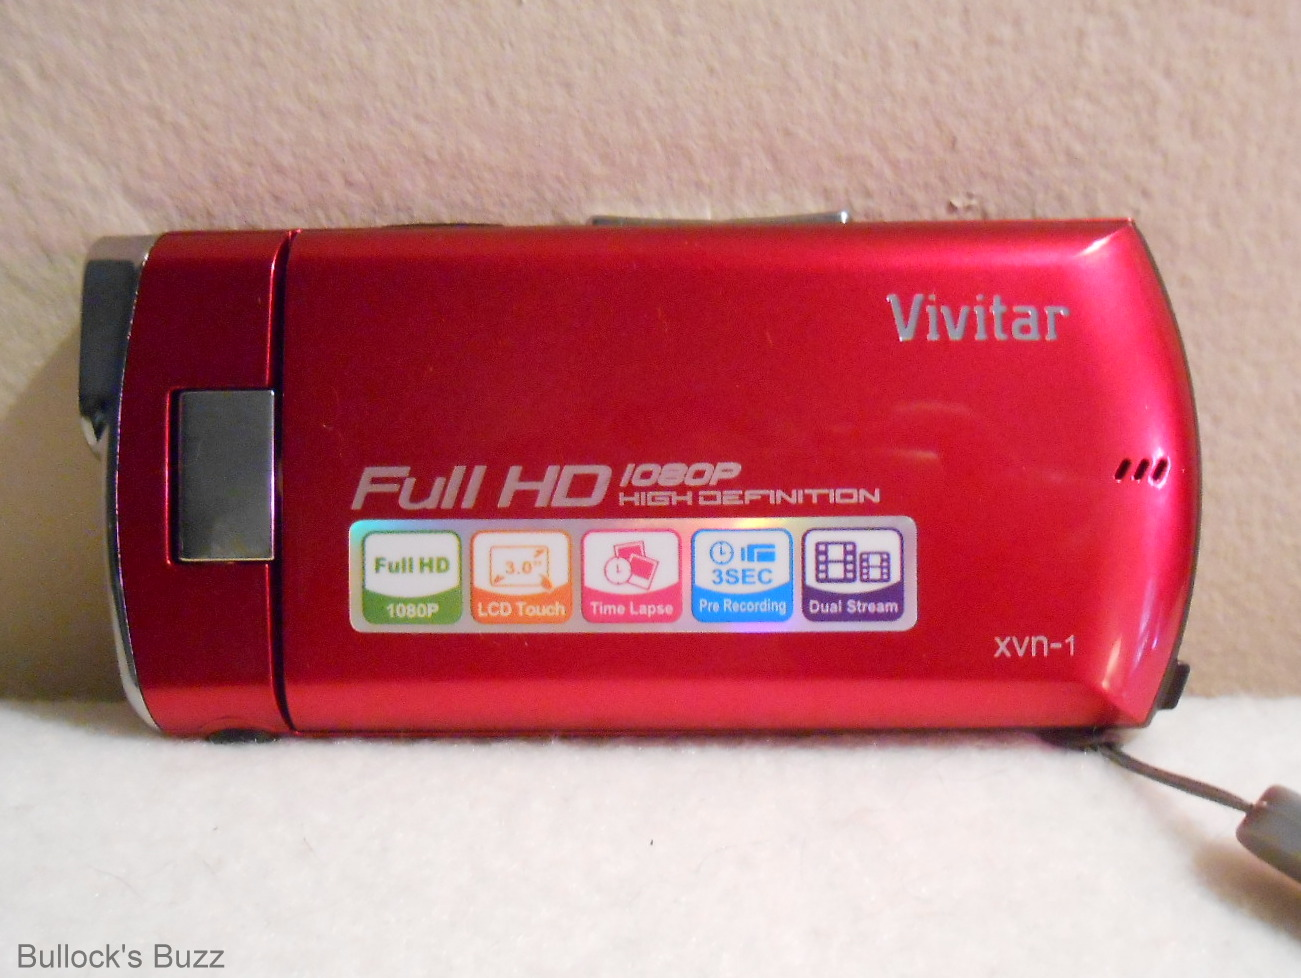 Vivitar XVN1 DVR: The Ultra-Portable DVR Packed with Features!